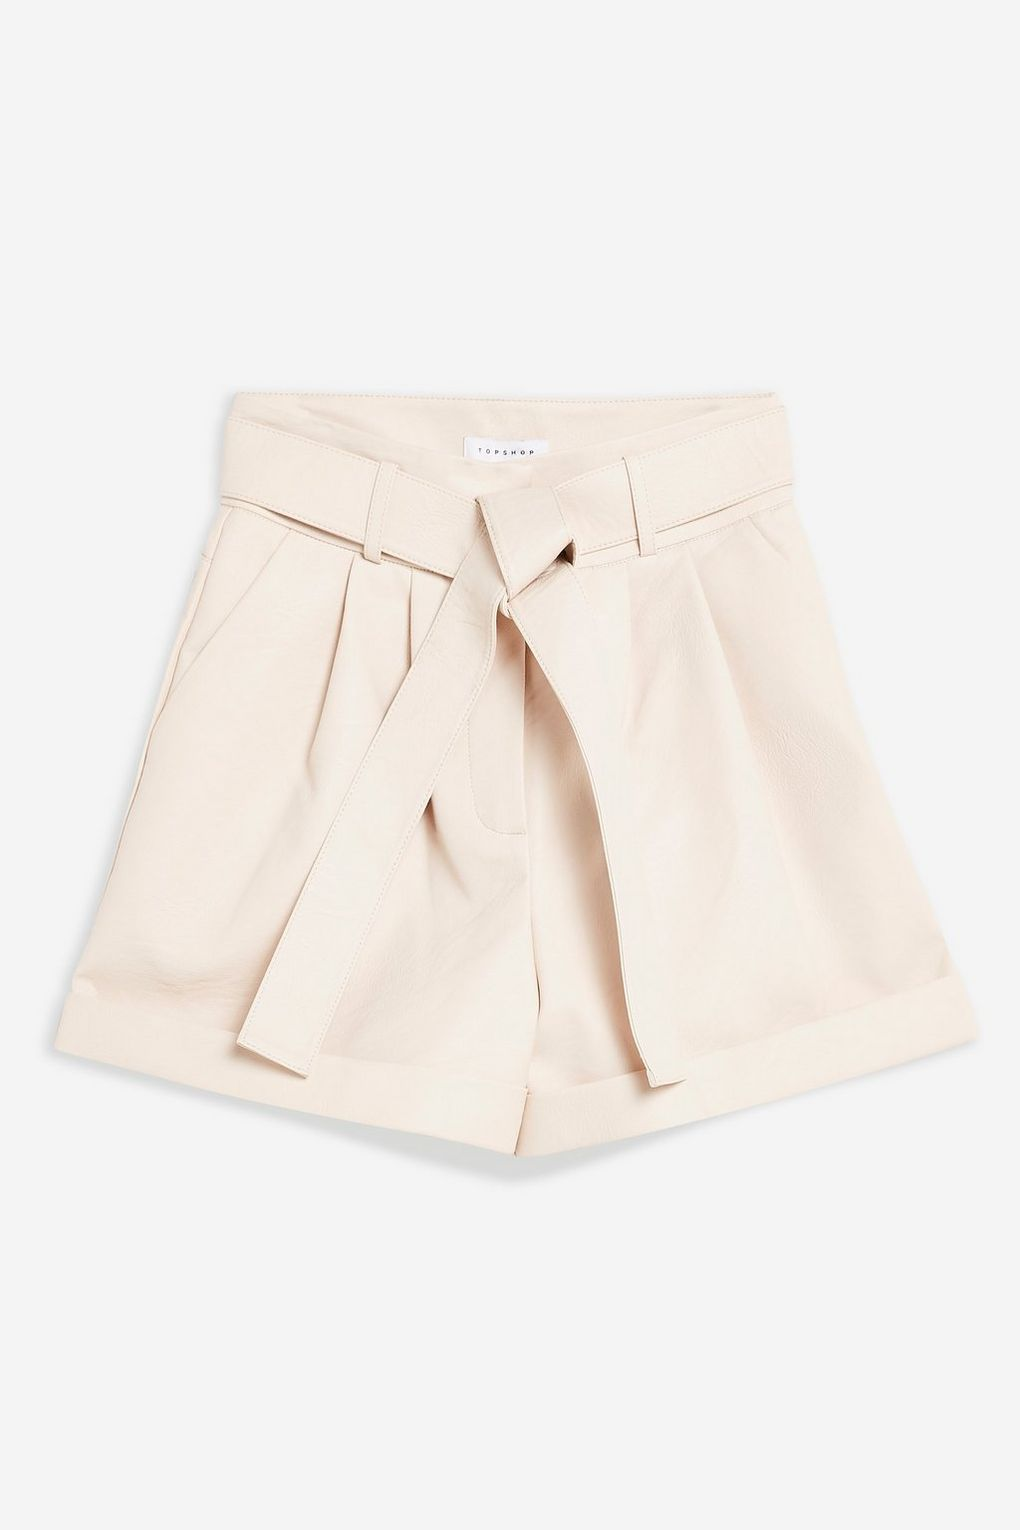 Top Shop Leather Shorts     $60